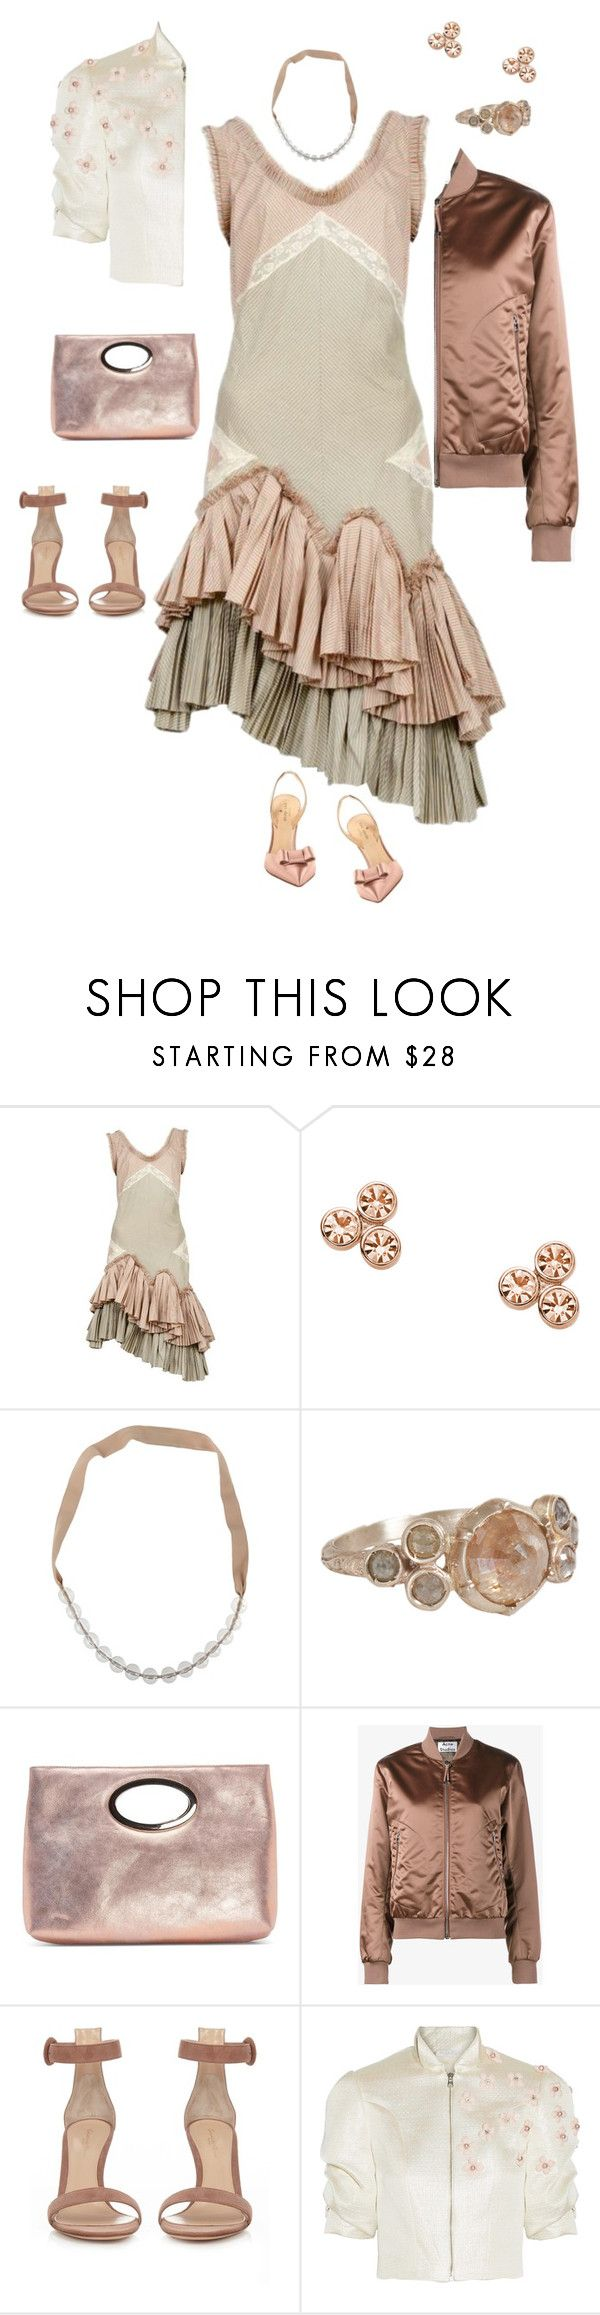 """Untitled #940"" by clothes-wise ❤ liked on Polyvore featuring Alexander McQueen, FOSSIL, Pianurastudio, Anaconda, Donald J Pliner, Acne Studios, Gianvito Rossi and Reem Acra"